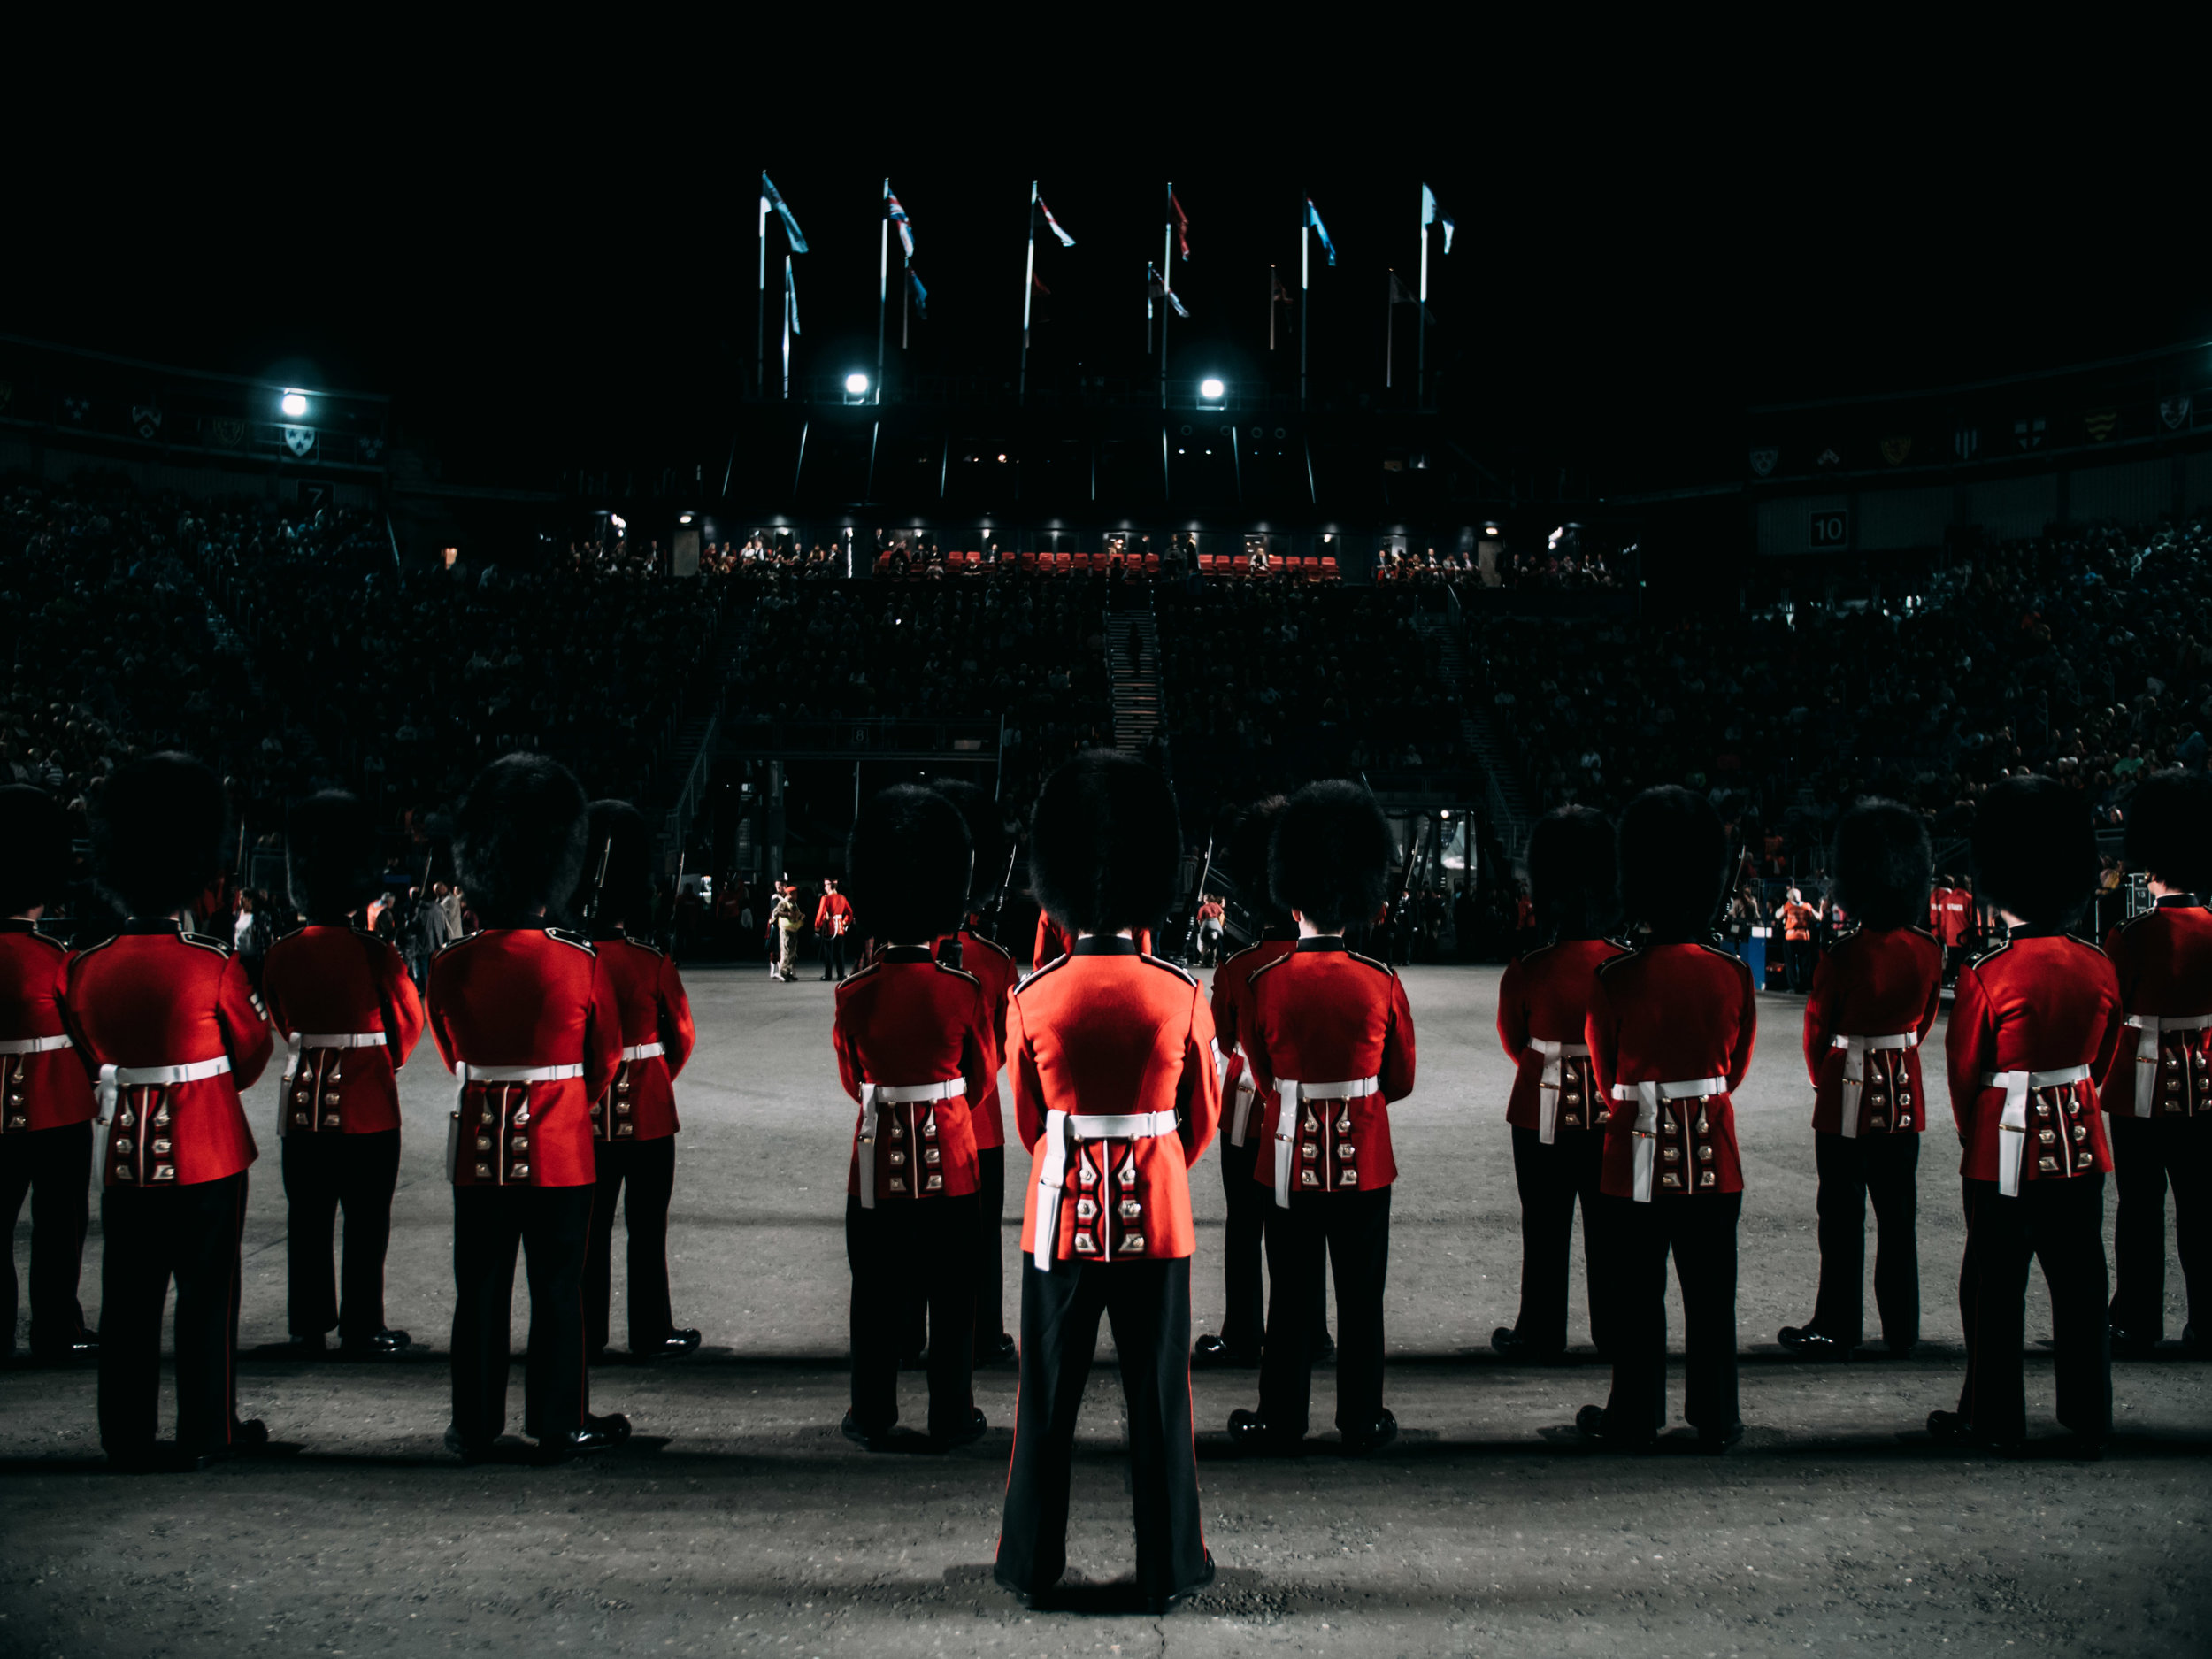 The Royal Edinburgh Military Tattoo  On assignment from Campfire